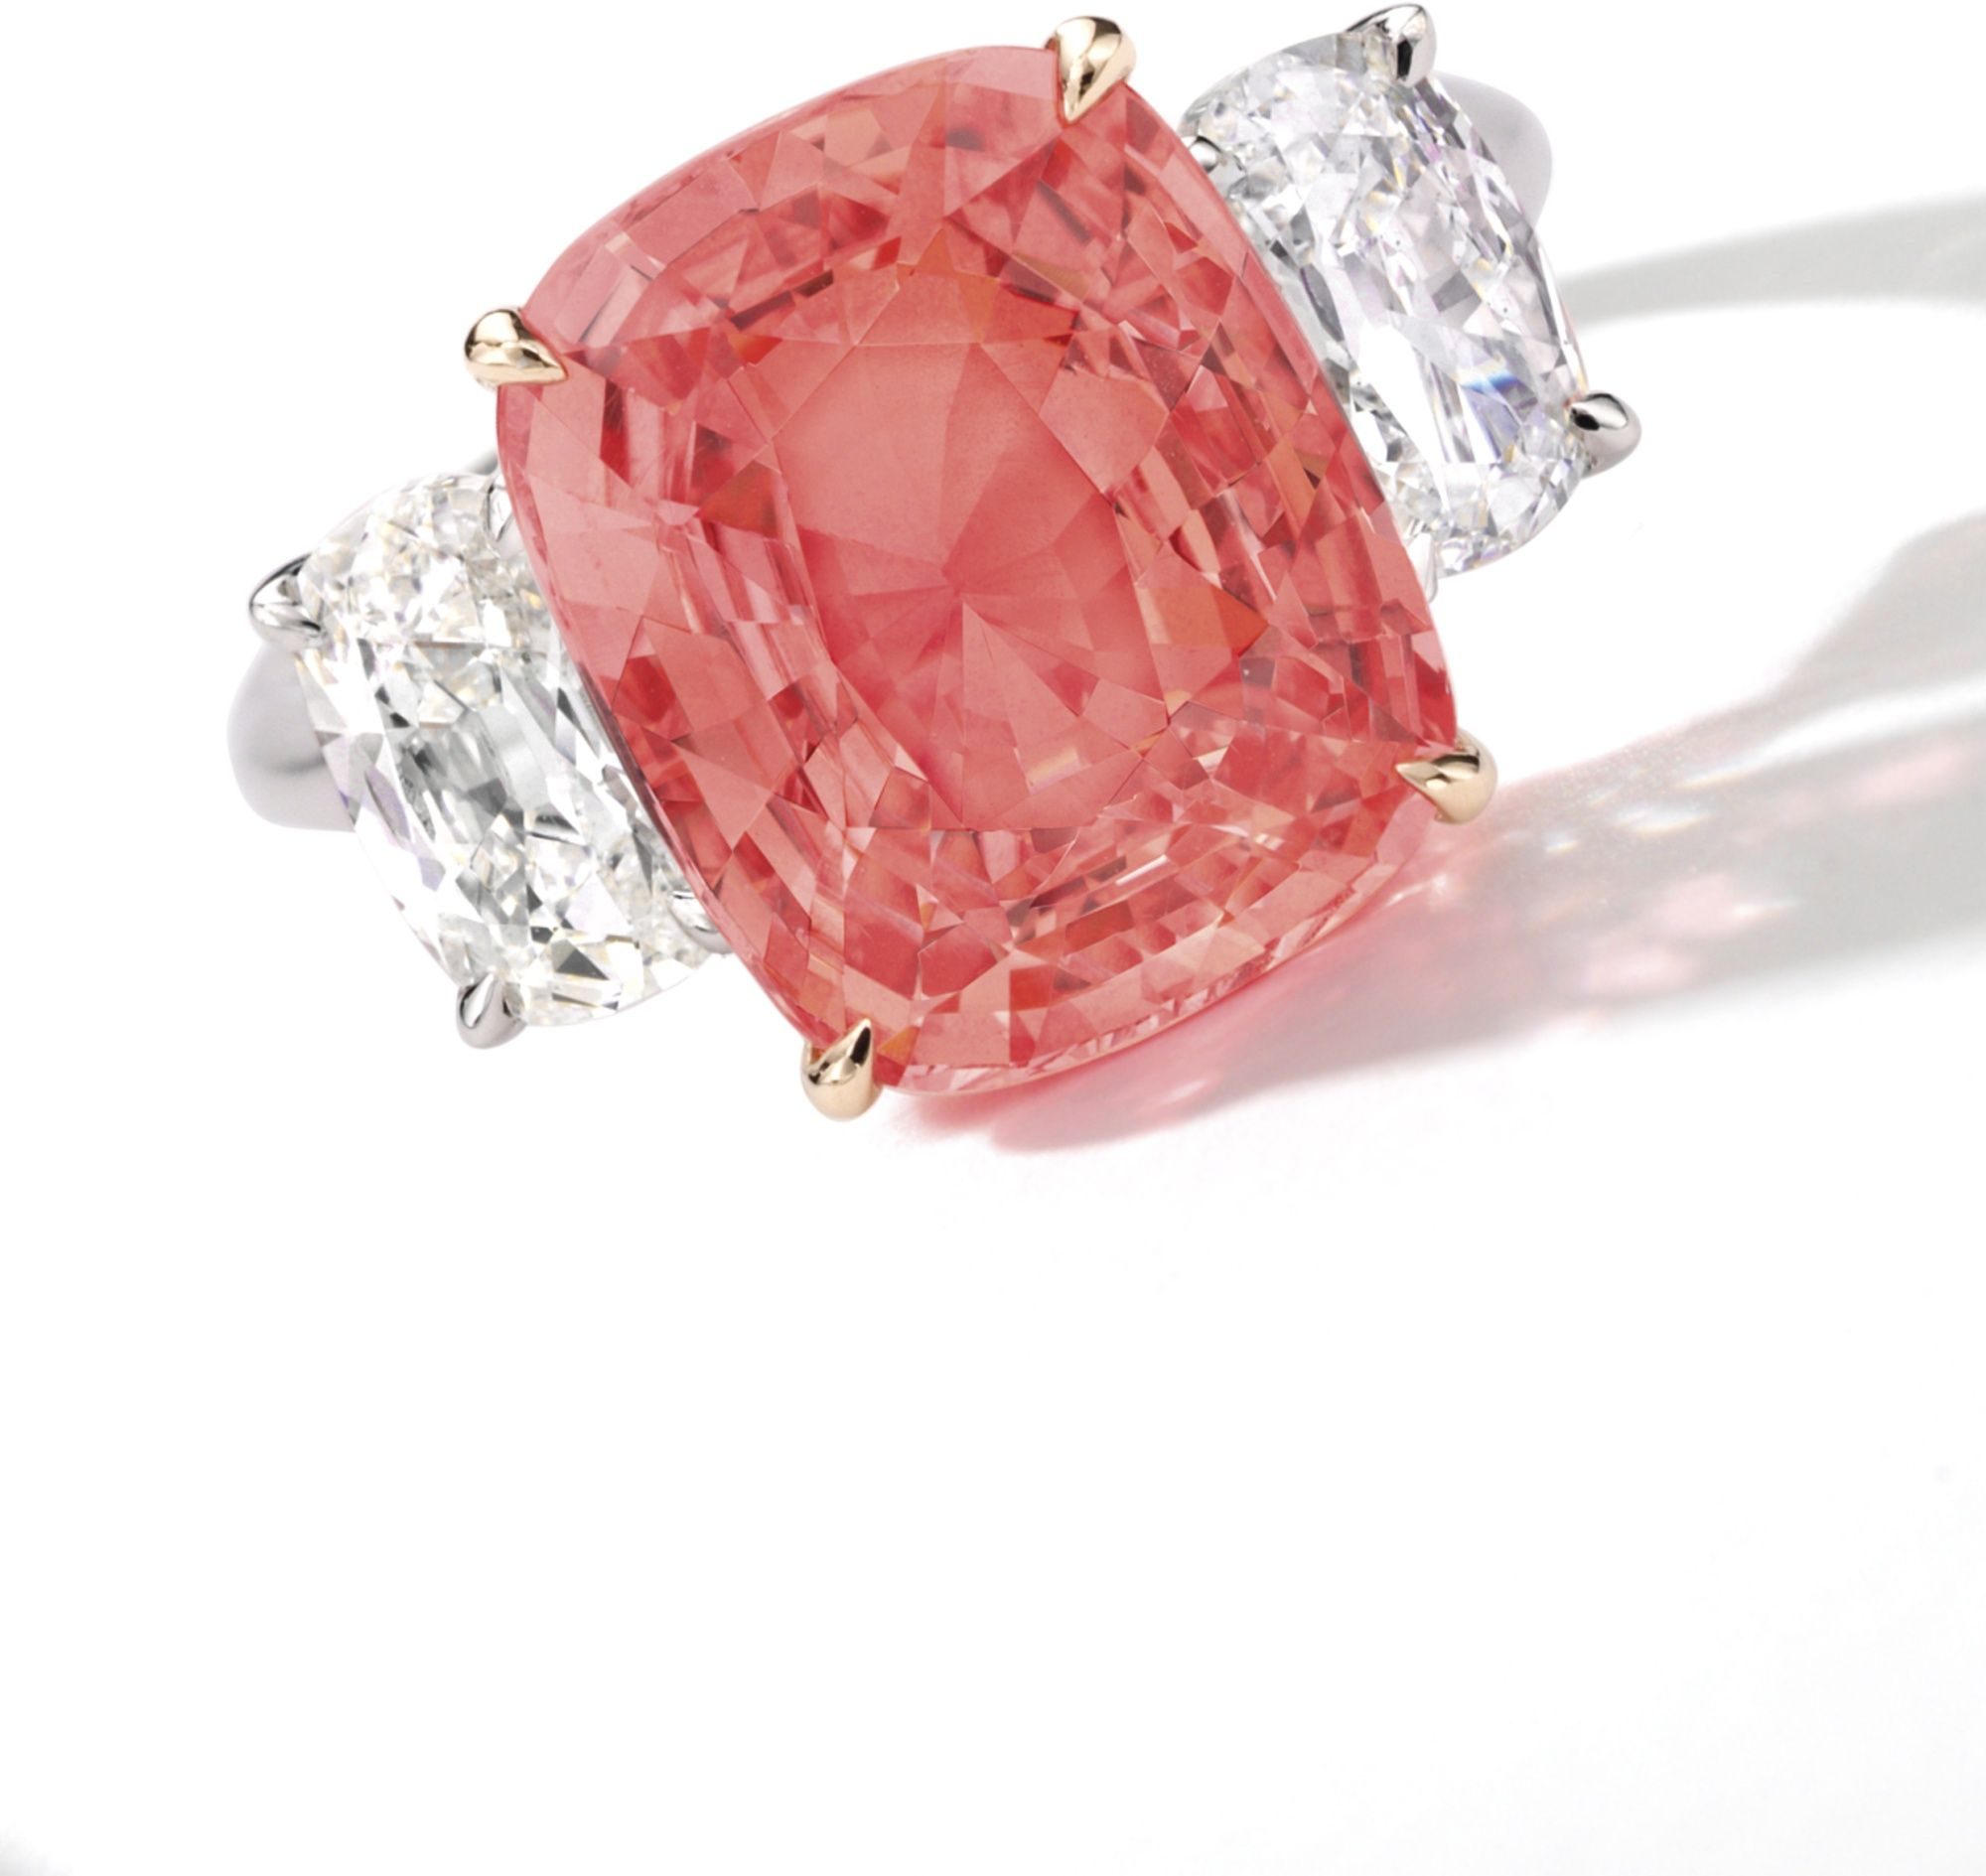 shoulders within floral christie with set hong brilliant auction kong diamond carats oval motif cut gallery shaped sapphire padparadscha surround an at may from a weighing pin trifurcated earrings jewels s and the magnificent approximately